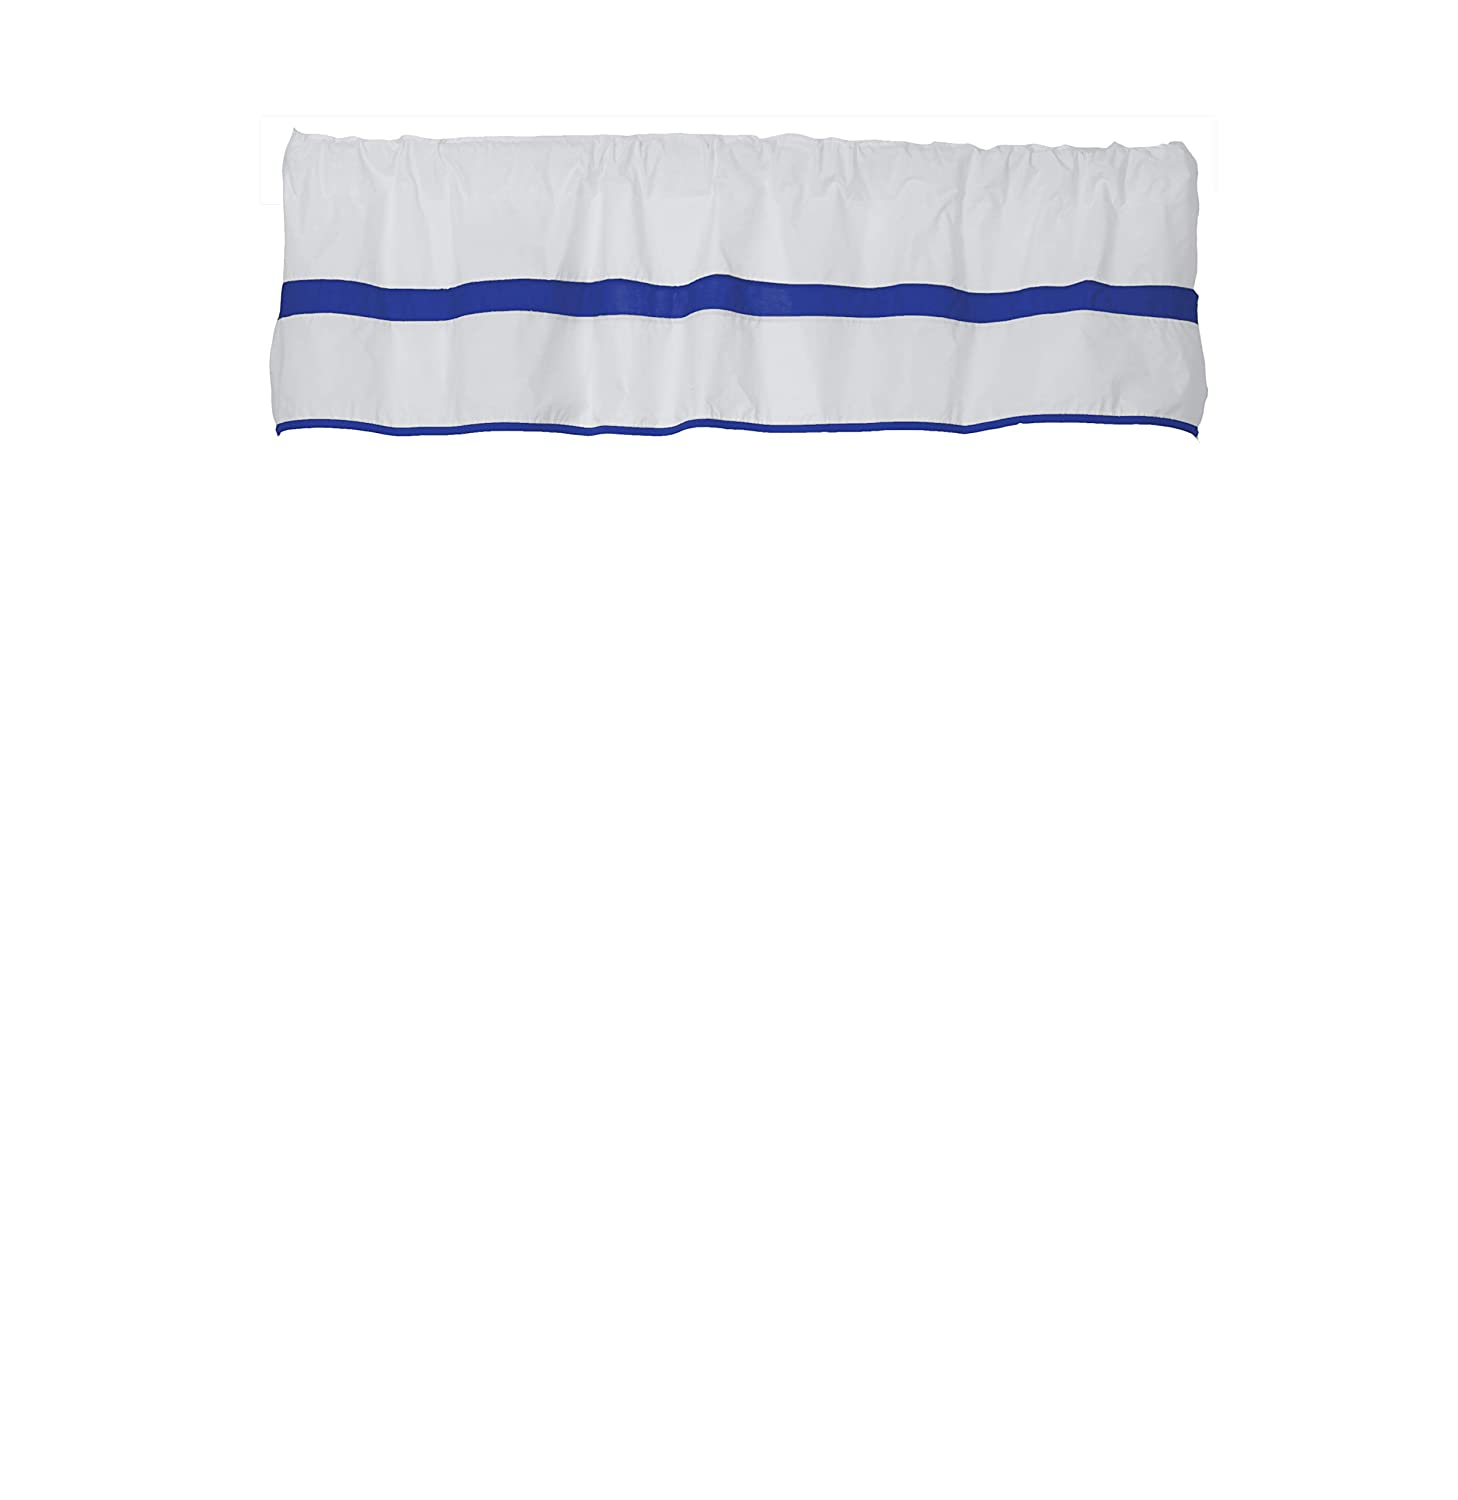 Animer and price revision Baby Doll Bedding Modern Hotel Sale item Royal Blue Window Style Valance